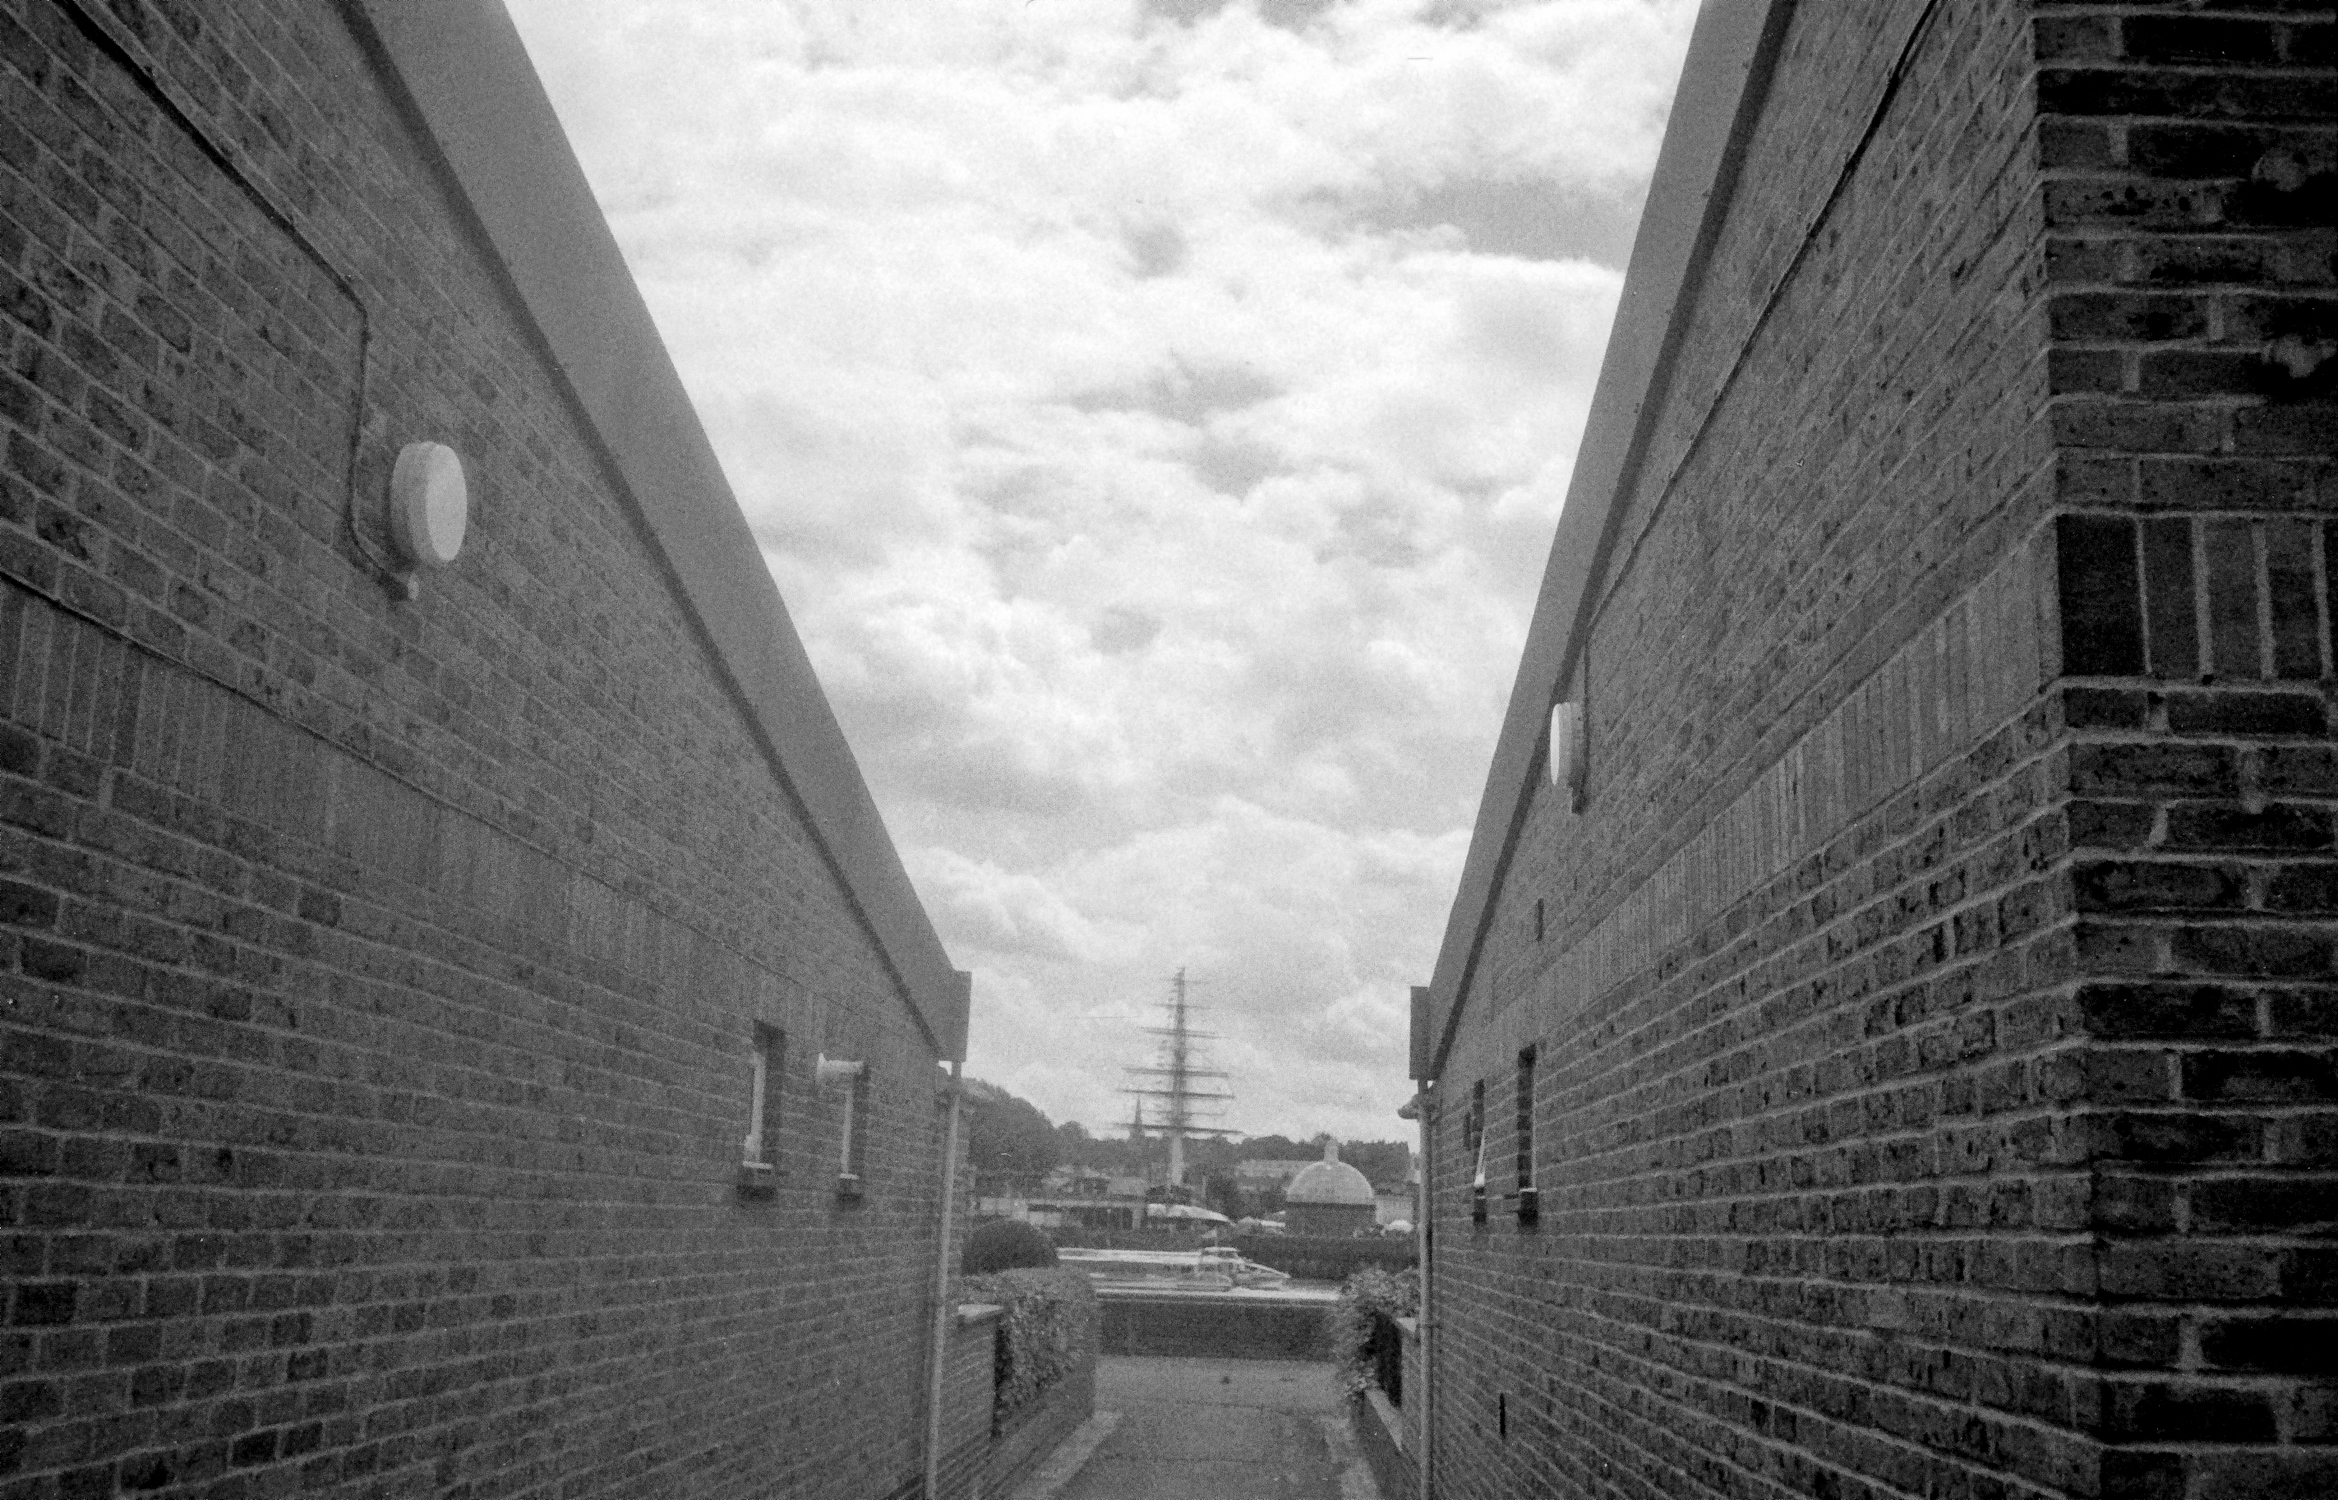 Ship mast between two brick buildings (Pic: Stephen Dowling)